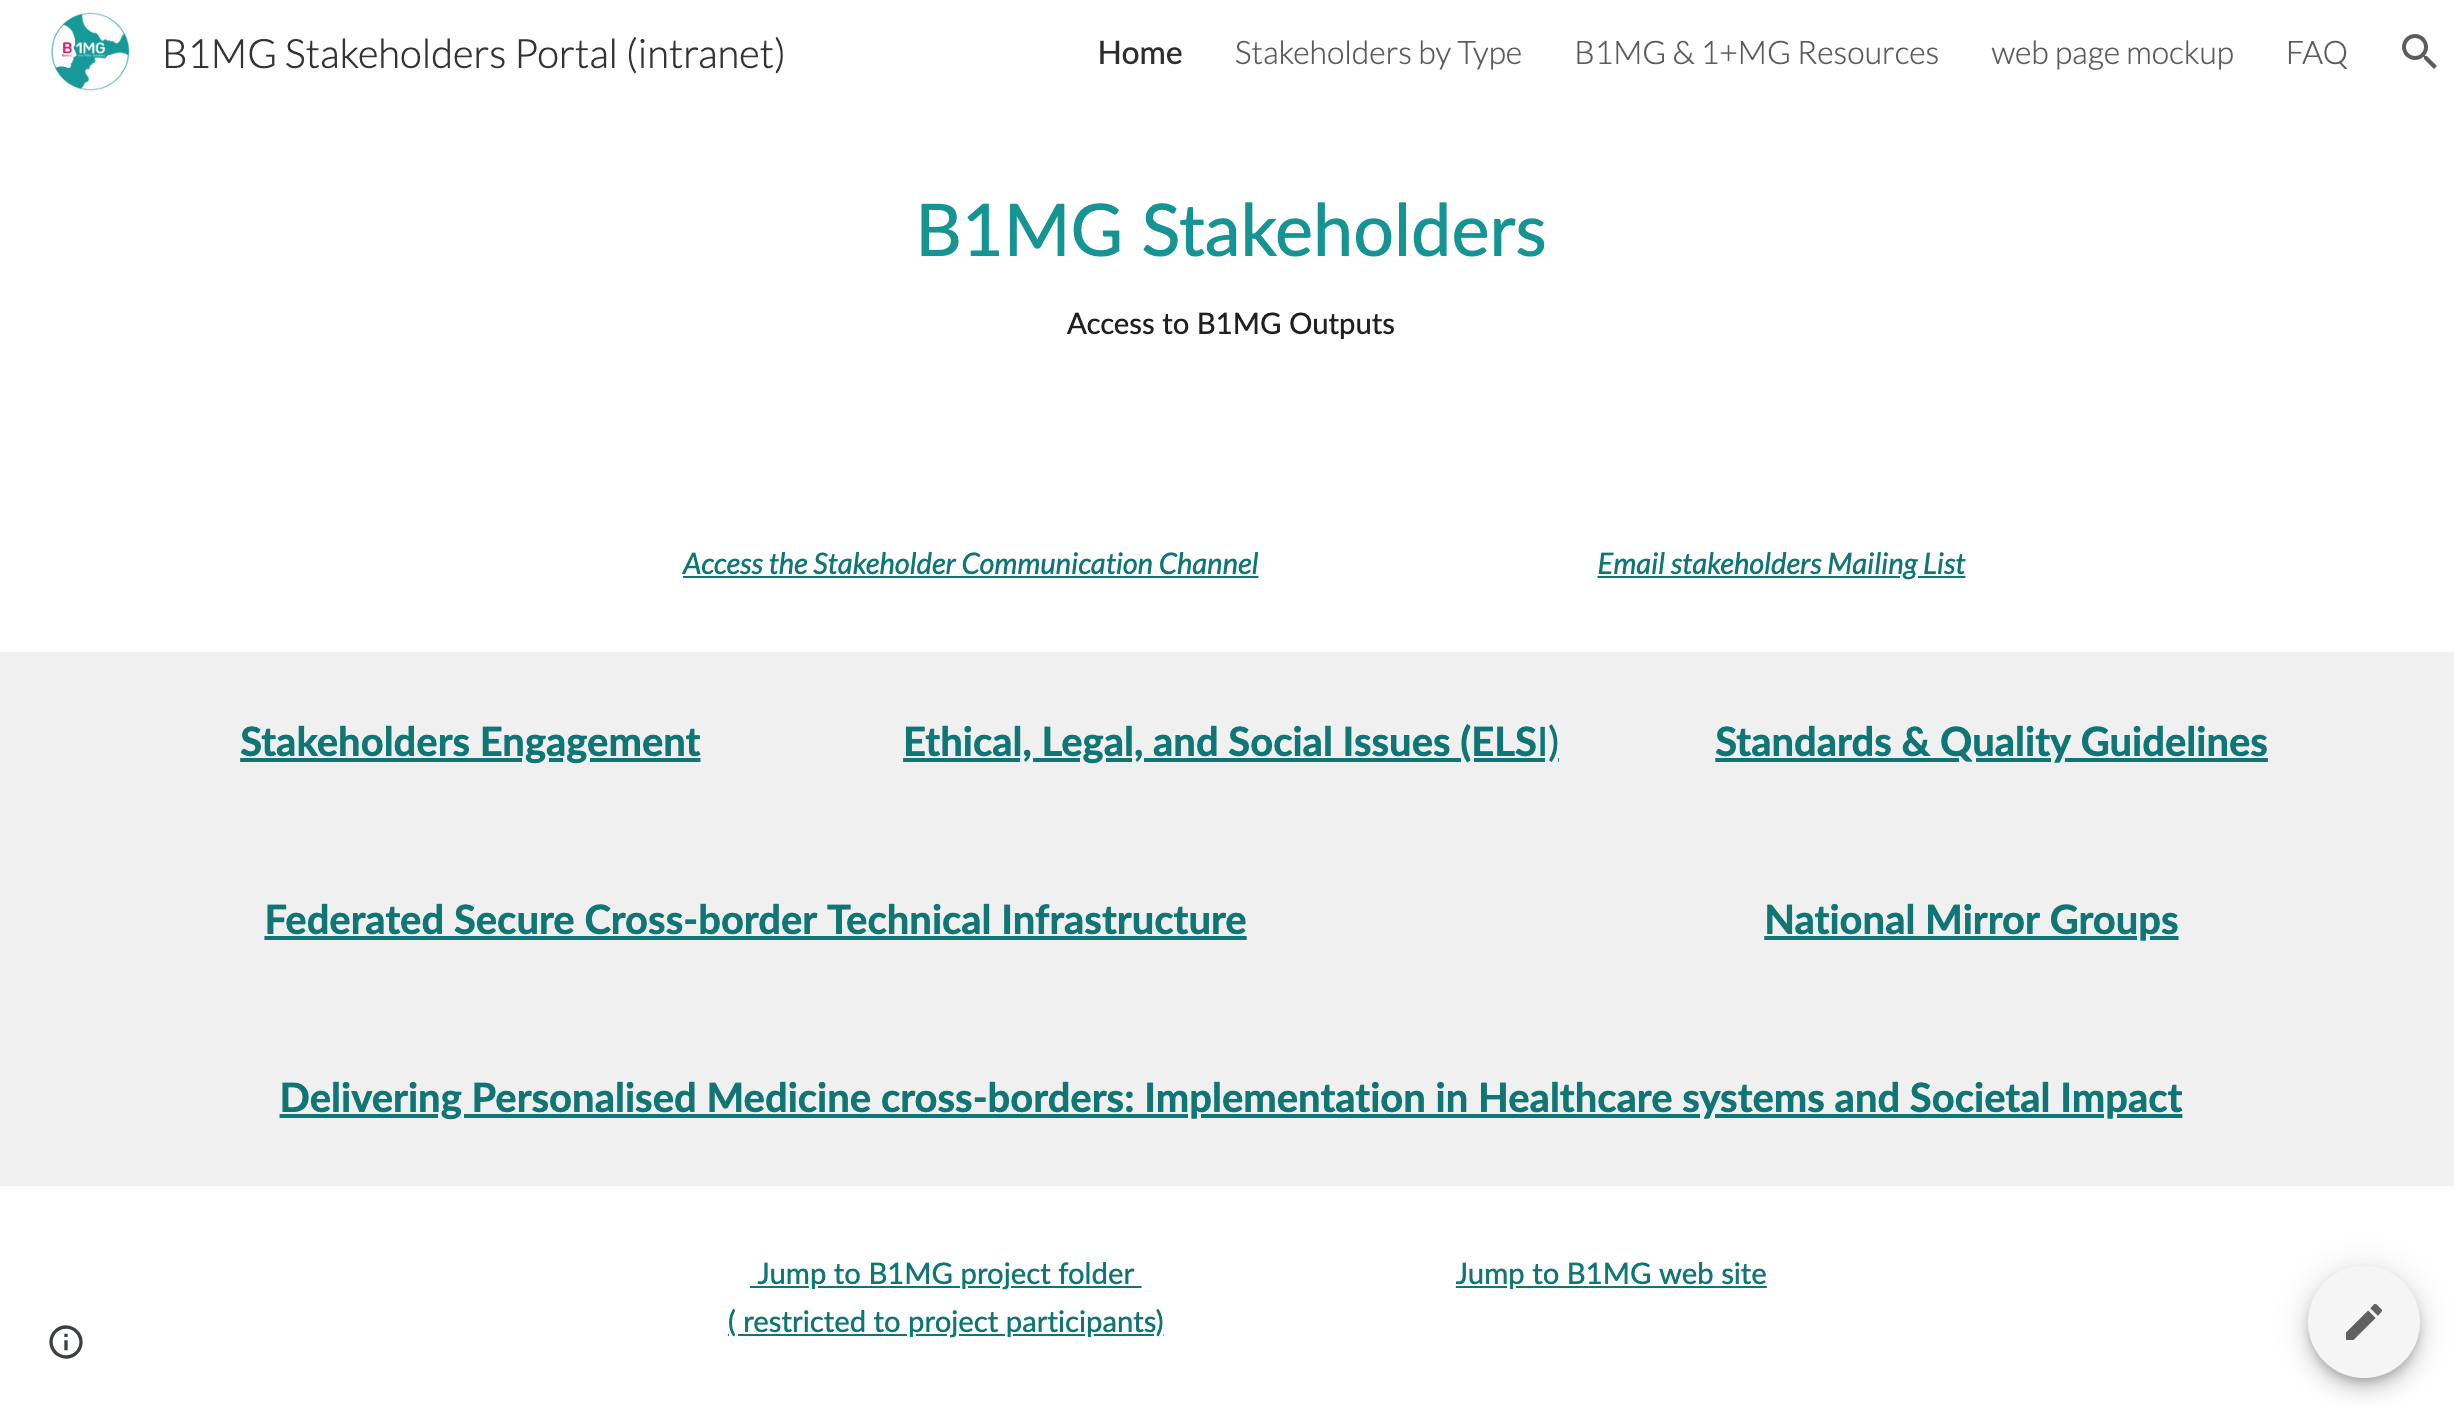 A screenshot of the stakeholder portal